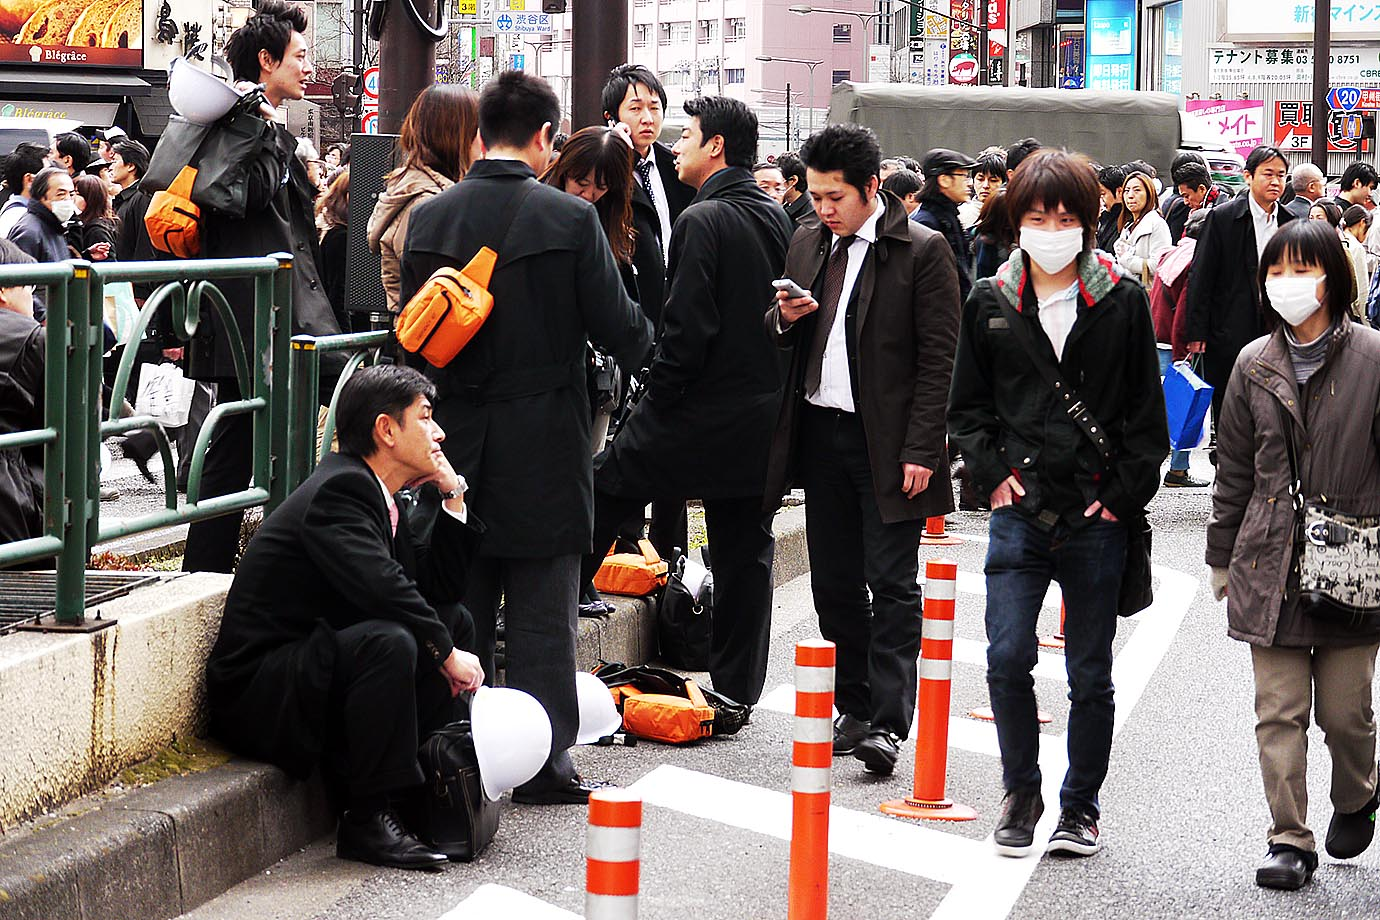 aftermath-tohoku-earthquake-shinjuku4